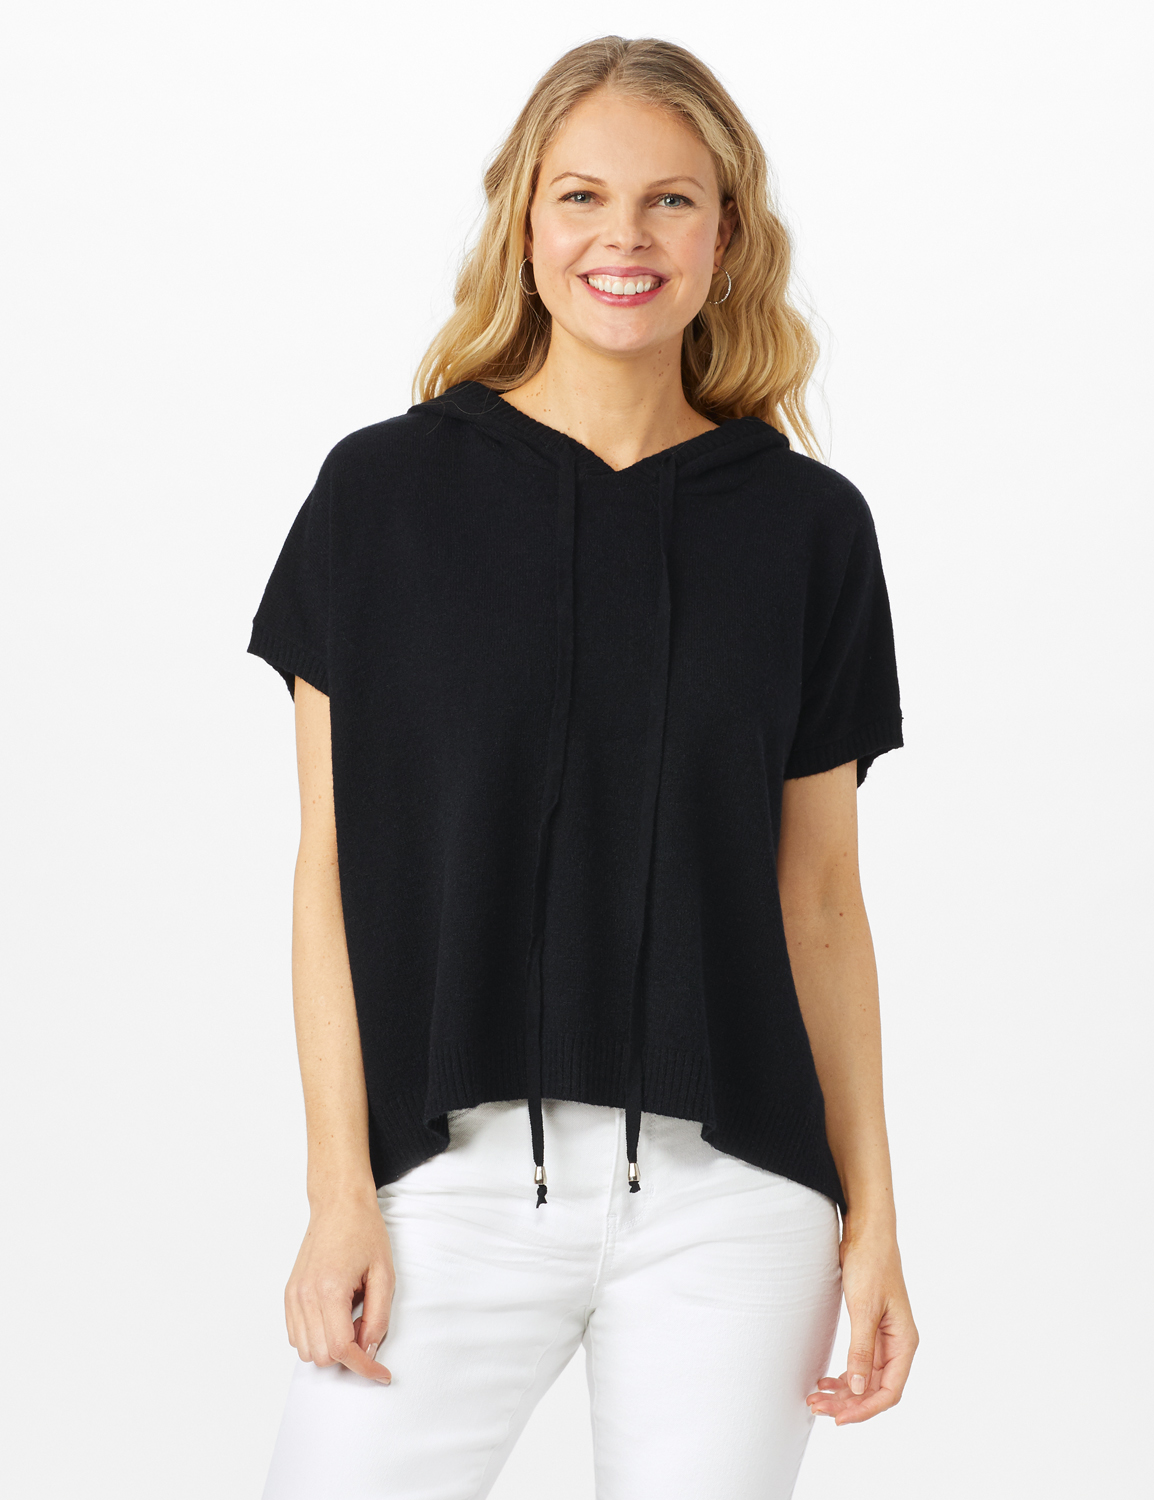 Hoodie Sweater Poncho -Black - Front